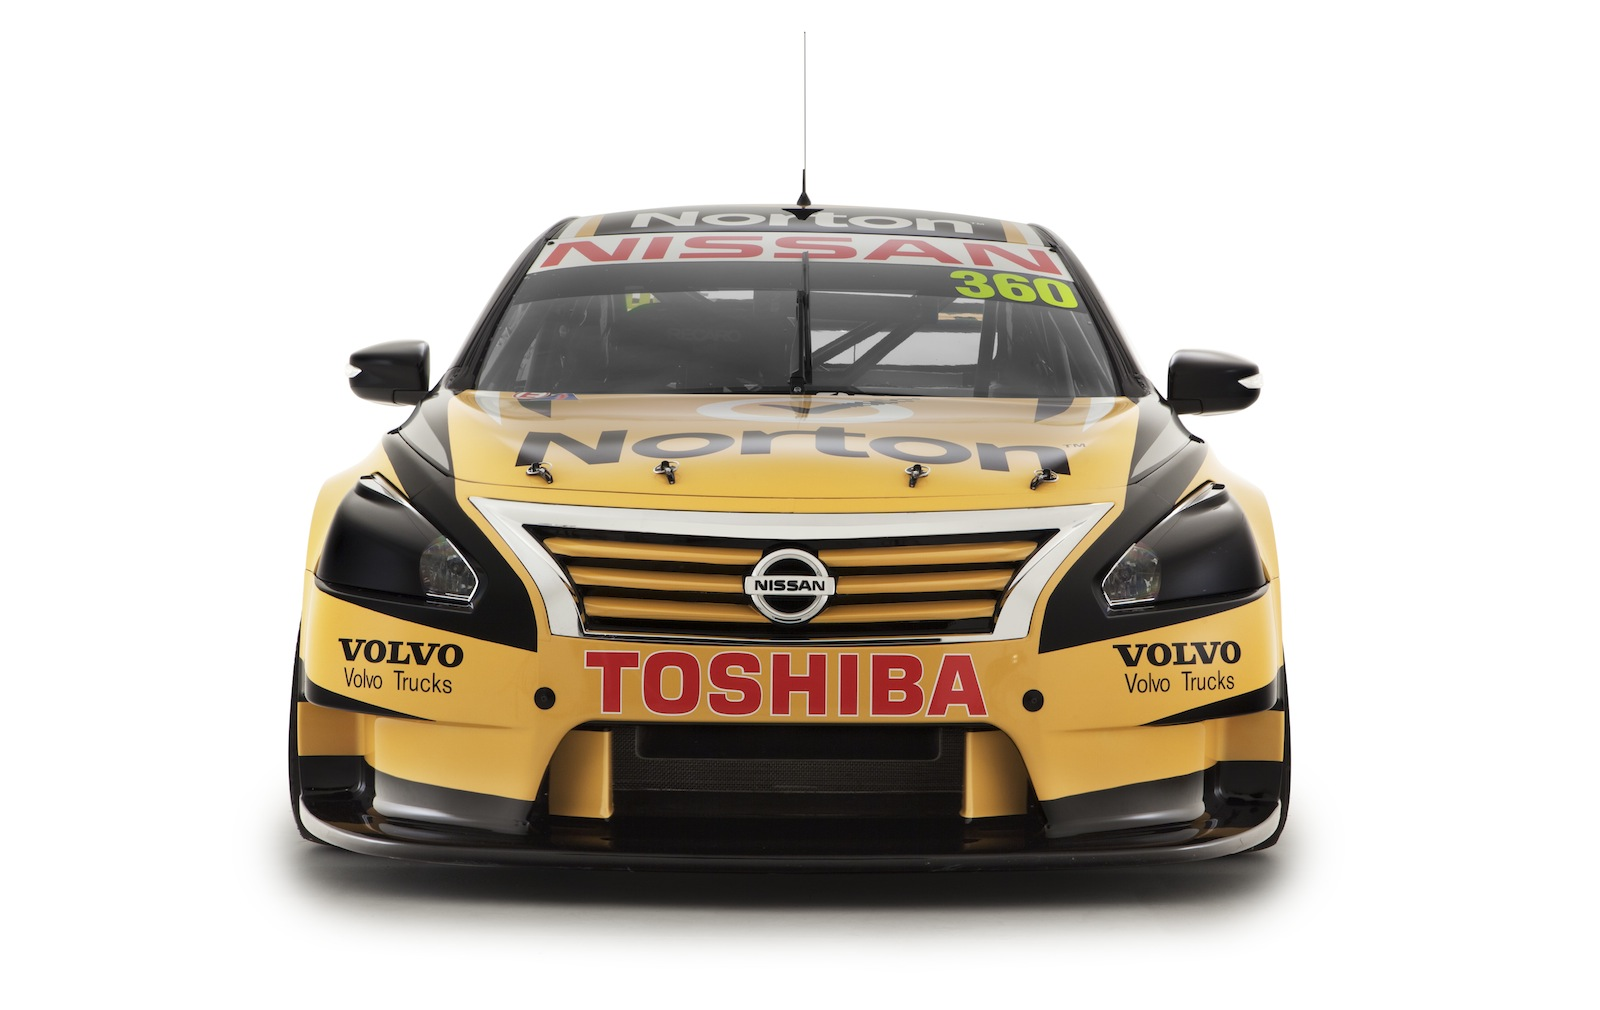 Nissan Altima V8 Supercars Revealed Photos 1 Of 17